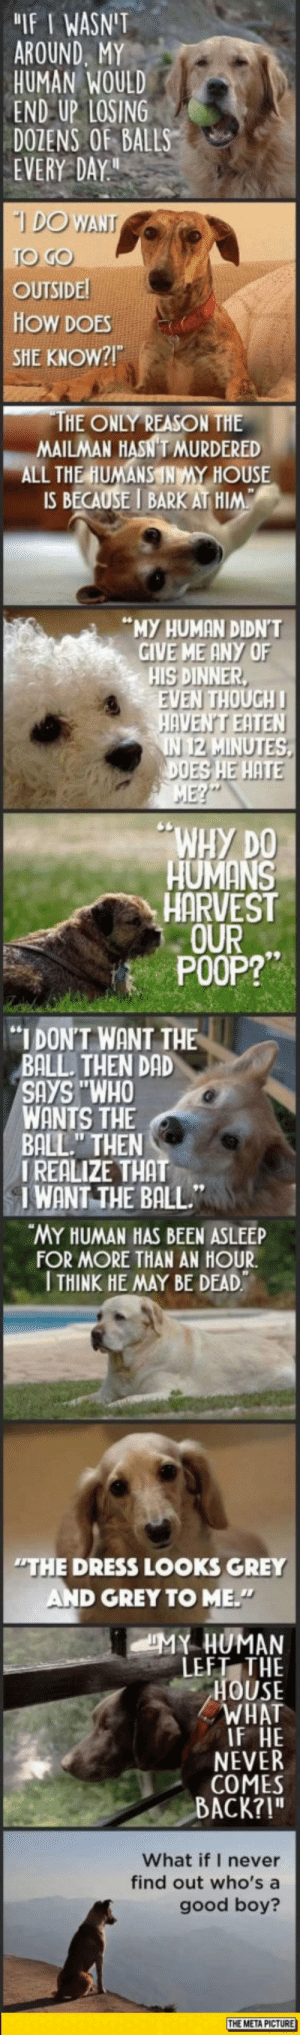 "srsfunny:  The World From A Dog's Perspective: IF I WASNIT  AROUND. MY  HUMAN WOULD  END UP LOSING  DOZENS OF BALLS  EVERY DAY  DO WT  OUTSIDE  HOW DOES  SHE KNOW?!  HE ONLY REASON THE  MAILMAN HASN T MURDERED  ALL THE HUMANSNMY HOUSE  IS BECAUSE I BARK AT HIM  ""MY HUMAN DIDN'T  GIVE ME ANY OF  HIS DINNER  VEN THOUGH  AVEN'T EATEN  2 MINUTES  ES HE HATE  N 1  WHy DO  HUMANS  HARVEST  OURー  POOP?  ""I DONT WANT THE  BALL. THEN DAD  SAYS ""WHO  WANTS THE  BALL"" THEN  IREALIZE THAT  IWANT THE BALL""  MY HUMAN HAS BEEN ASLEEP  FOR MORE THAN AN HOUR  THINK HE MAY BE DEAD  THE DRESS LOOKS GREY  AND GREY TO ME.  LEFT THE  HOUSE  WHAT  F HE  NEVER  COMES  ACK?!""  What if I never  find out who's a  good boy?  THE META PICTURE srsfunny:  The World From A Dog's Perspective"